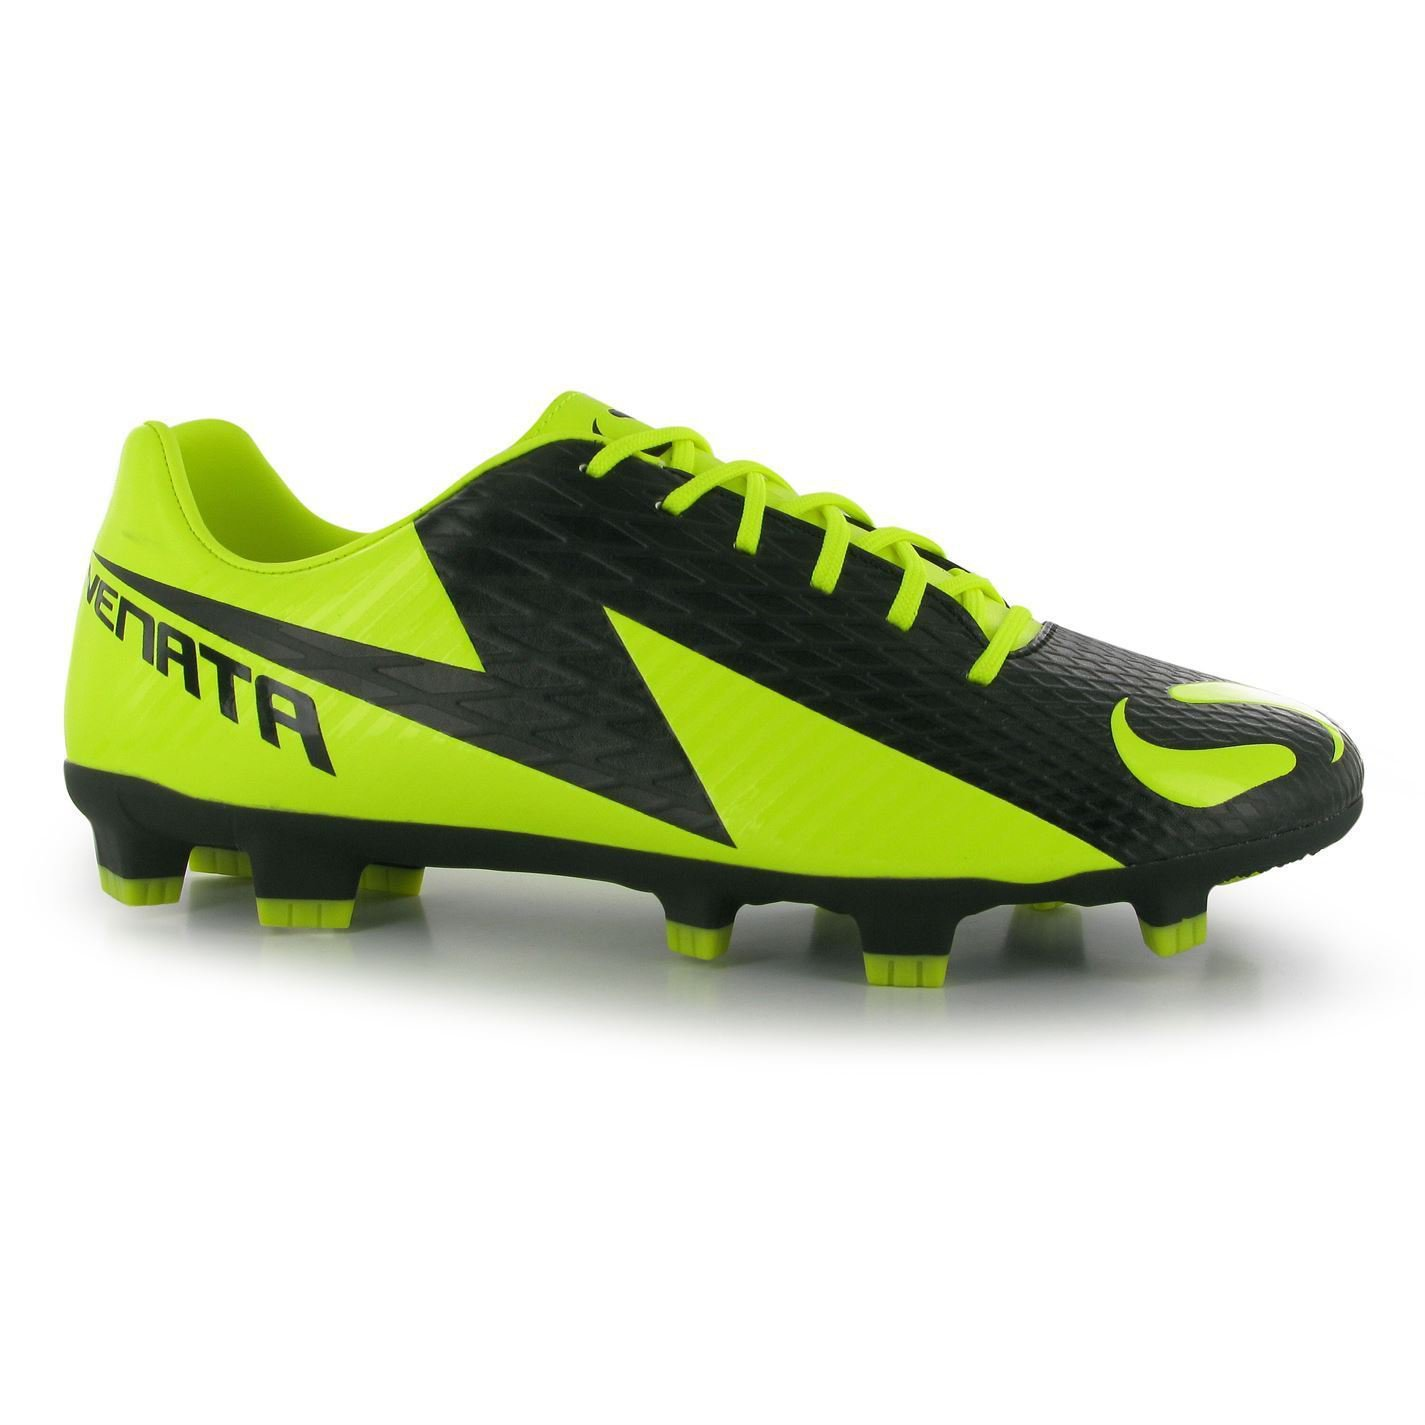 Sondico Mens Venata Fg Football Boots Trainers With Studs Sport Shoes Soccer